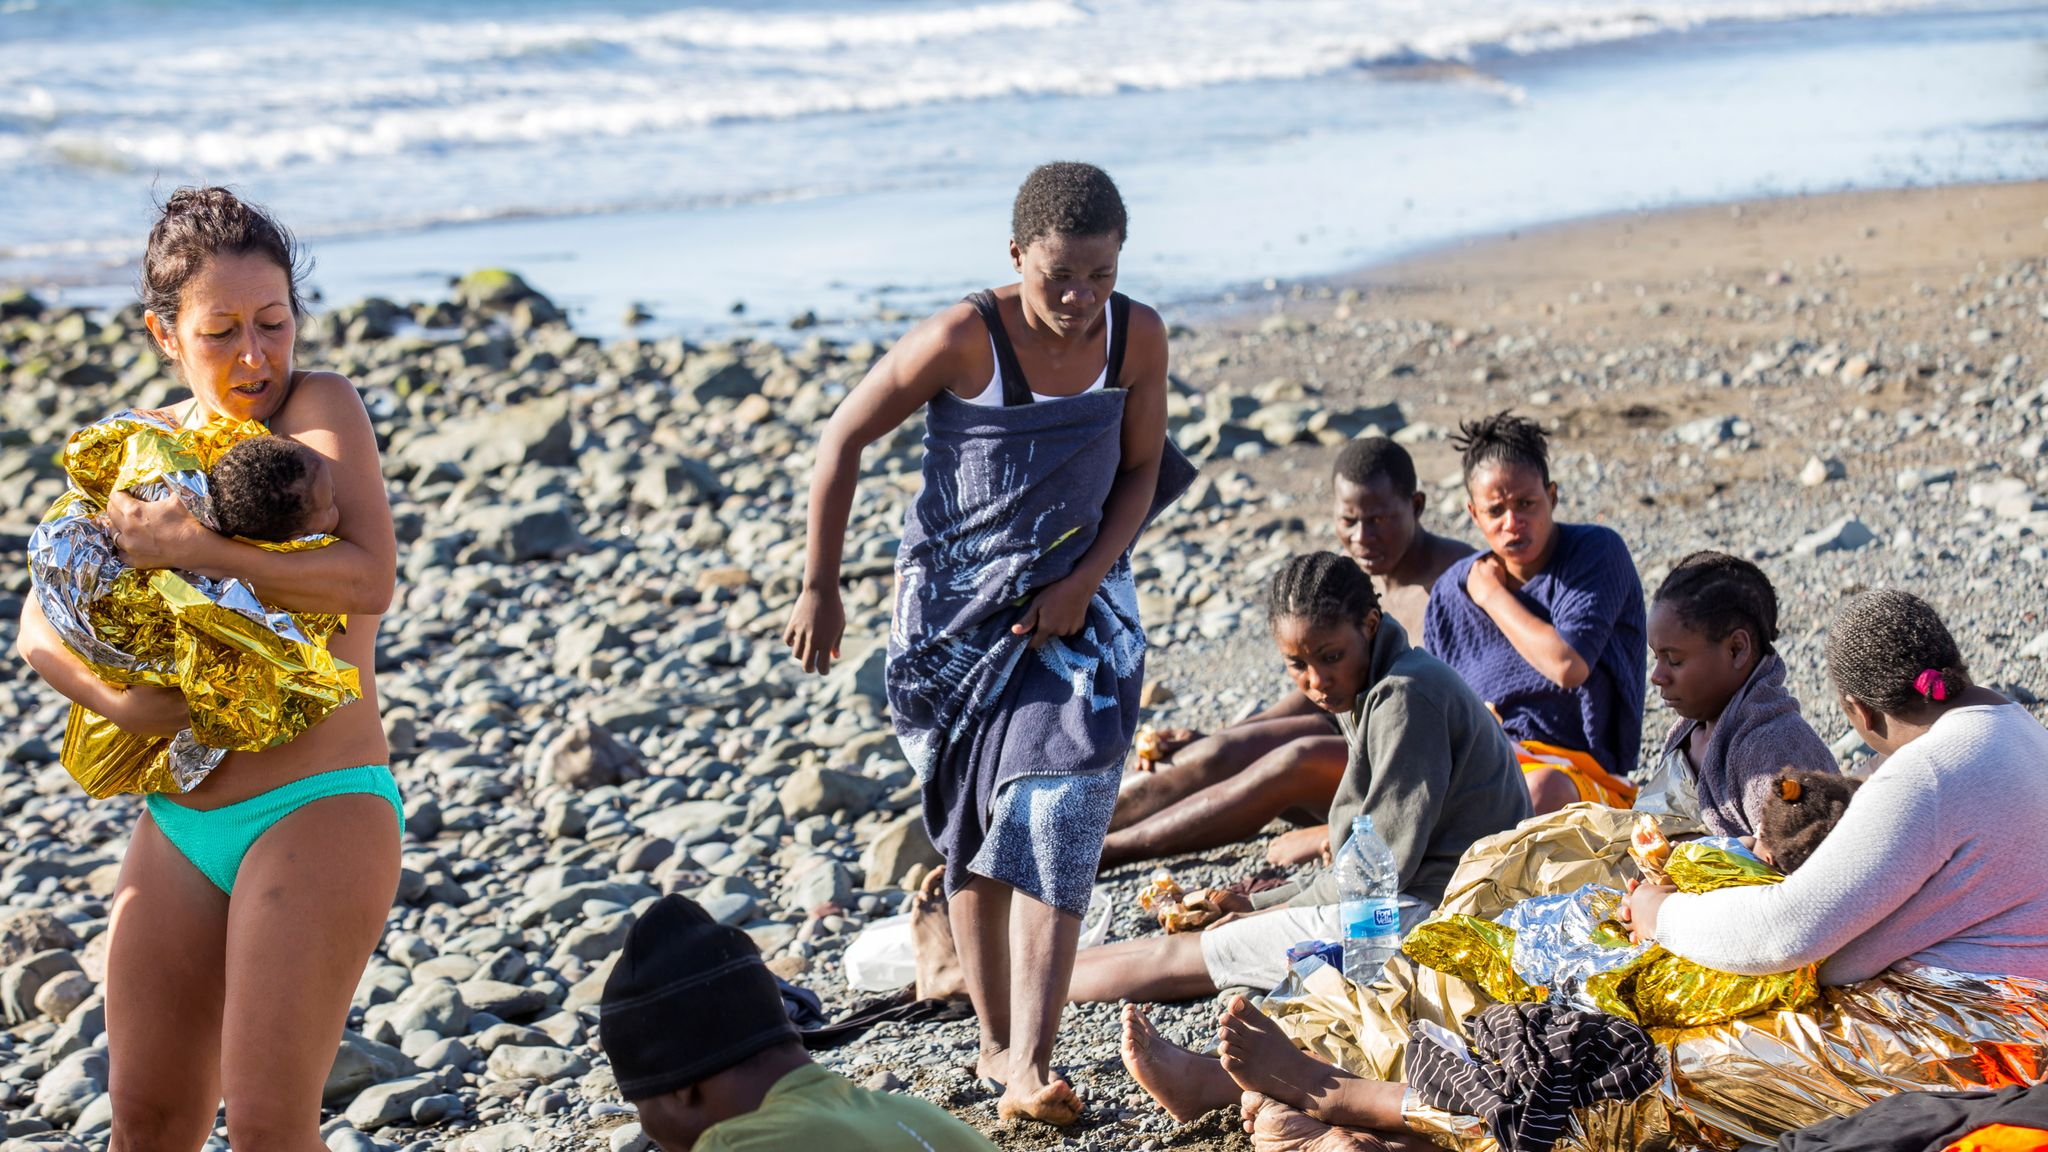 Sunbathers help save migrants washed up on Gran Canaria beach